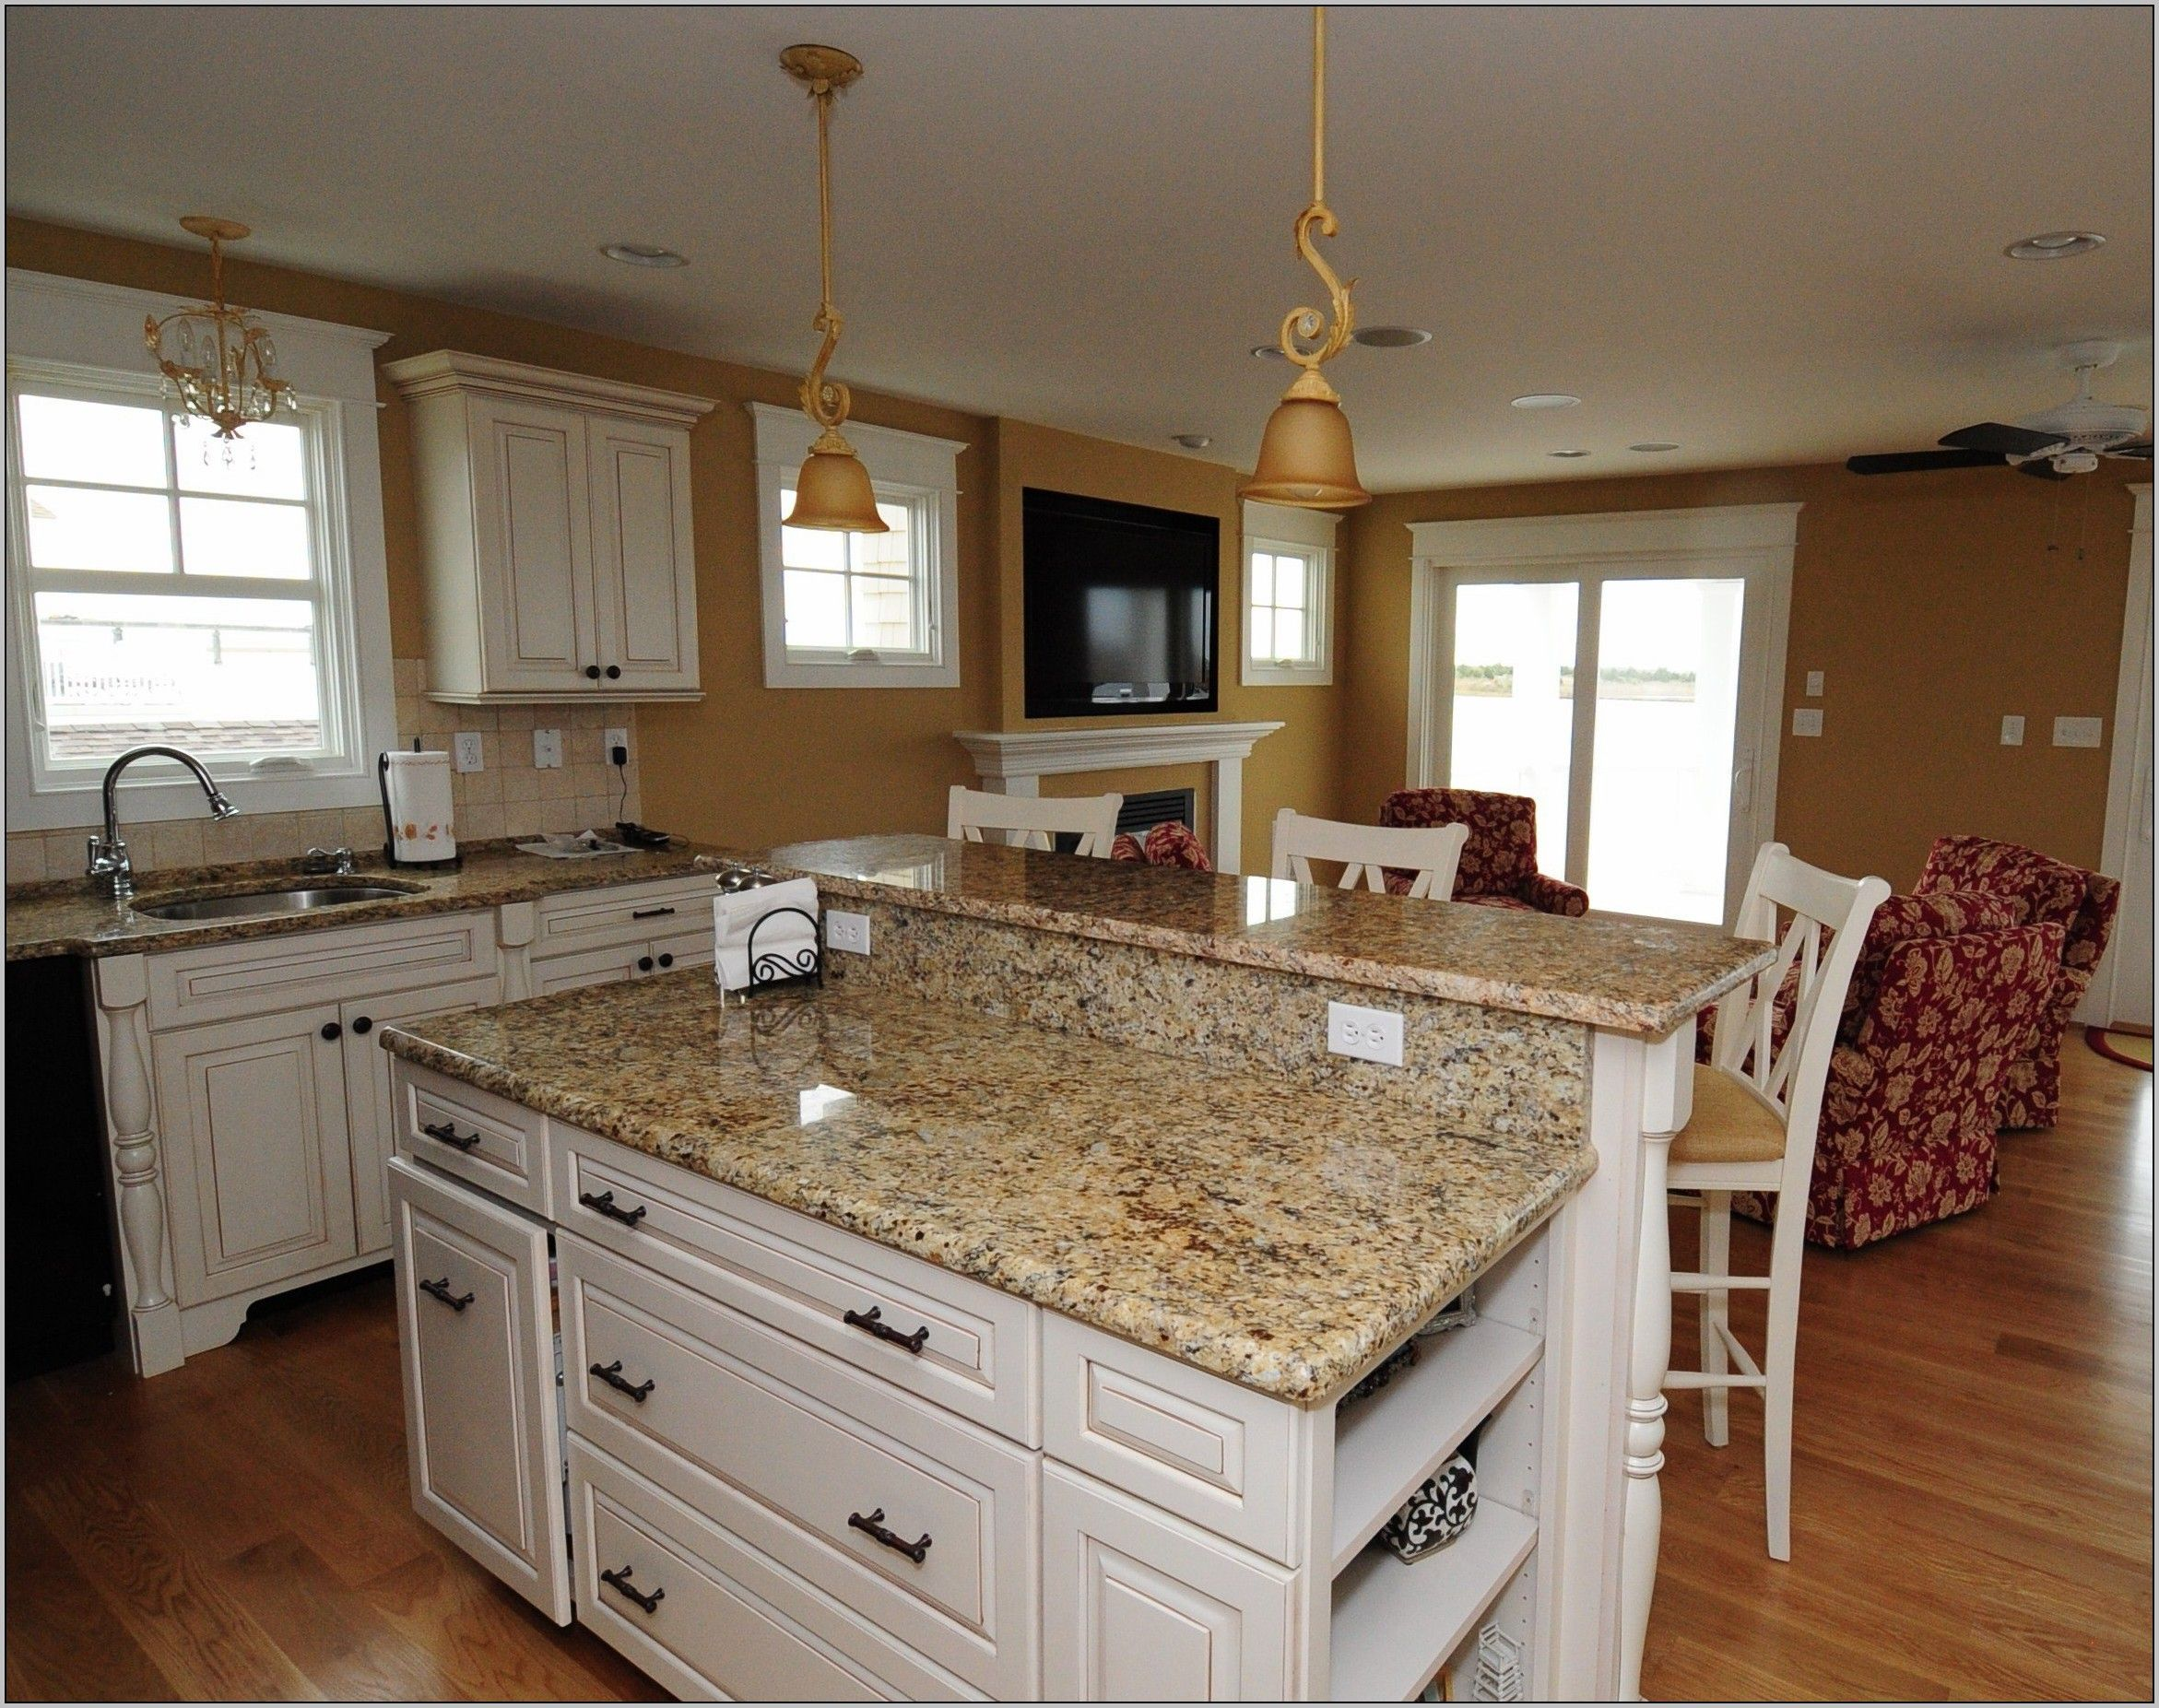 Exciting colonial cream granite for space remodel ideas for Cream colored granite countertops